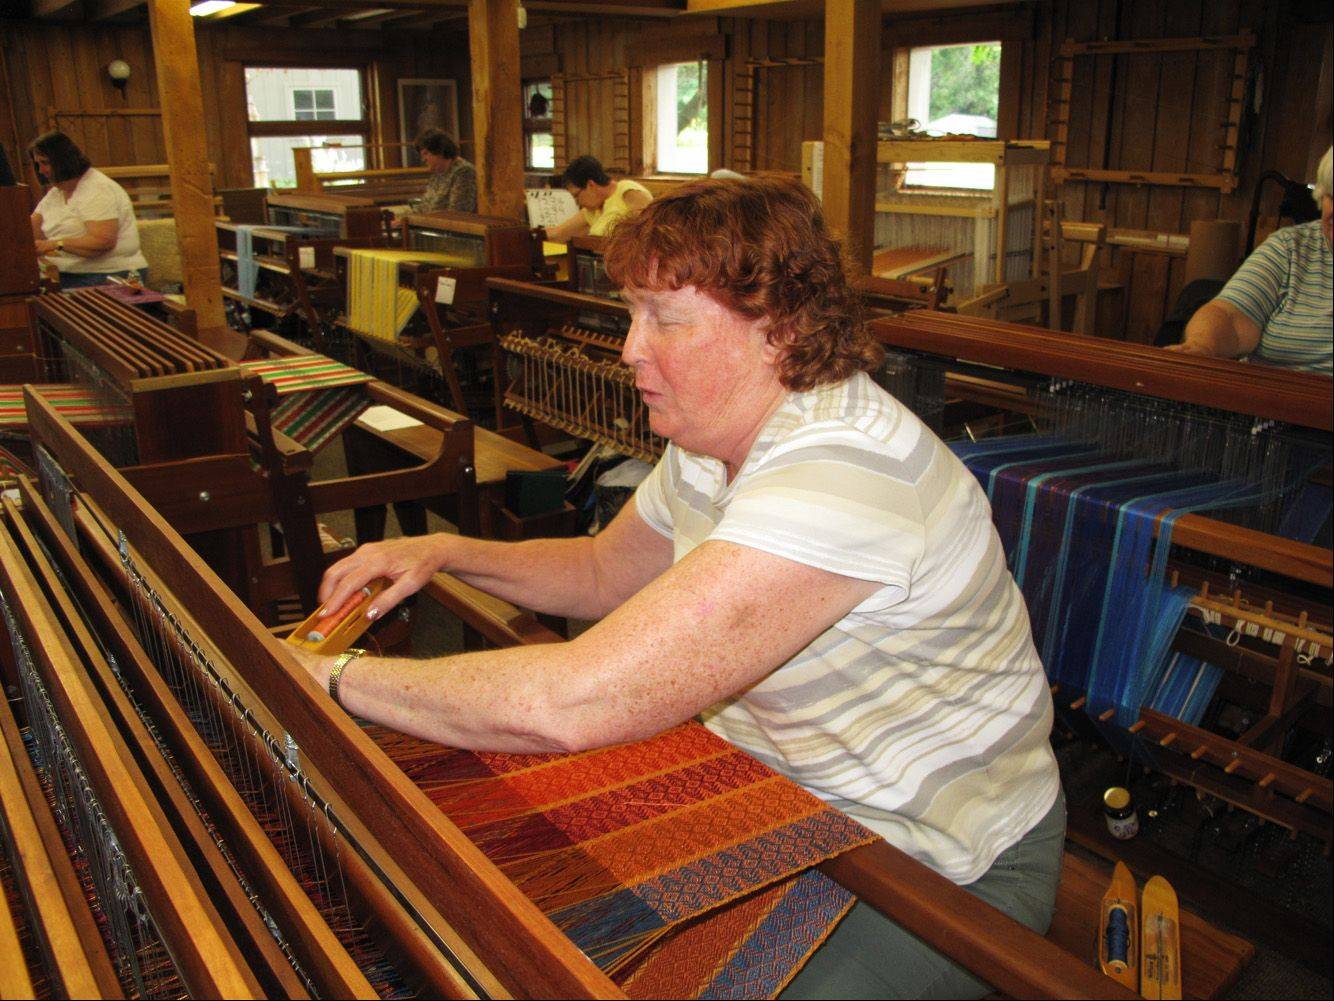 Sue Melrose is totally blind, but has learned to weave through a class at the Fine Line Creative Arts Center in St. Charles.